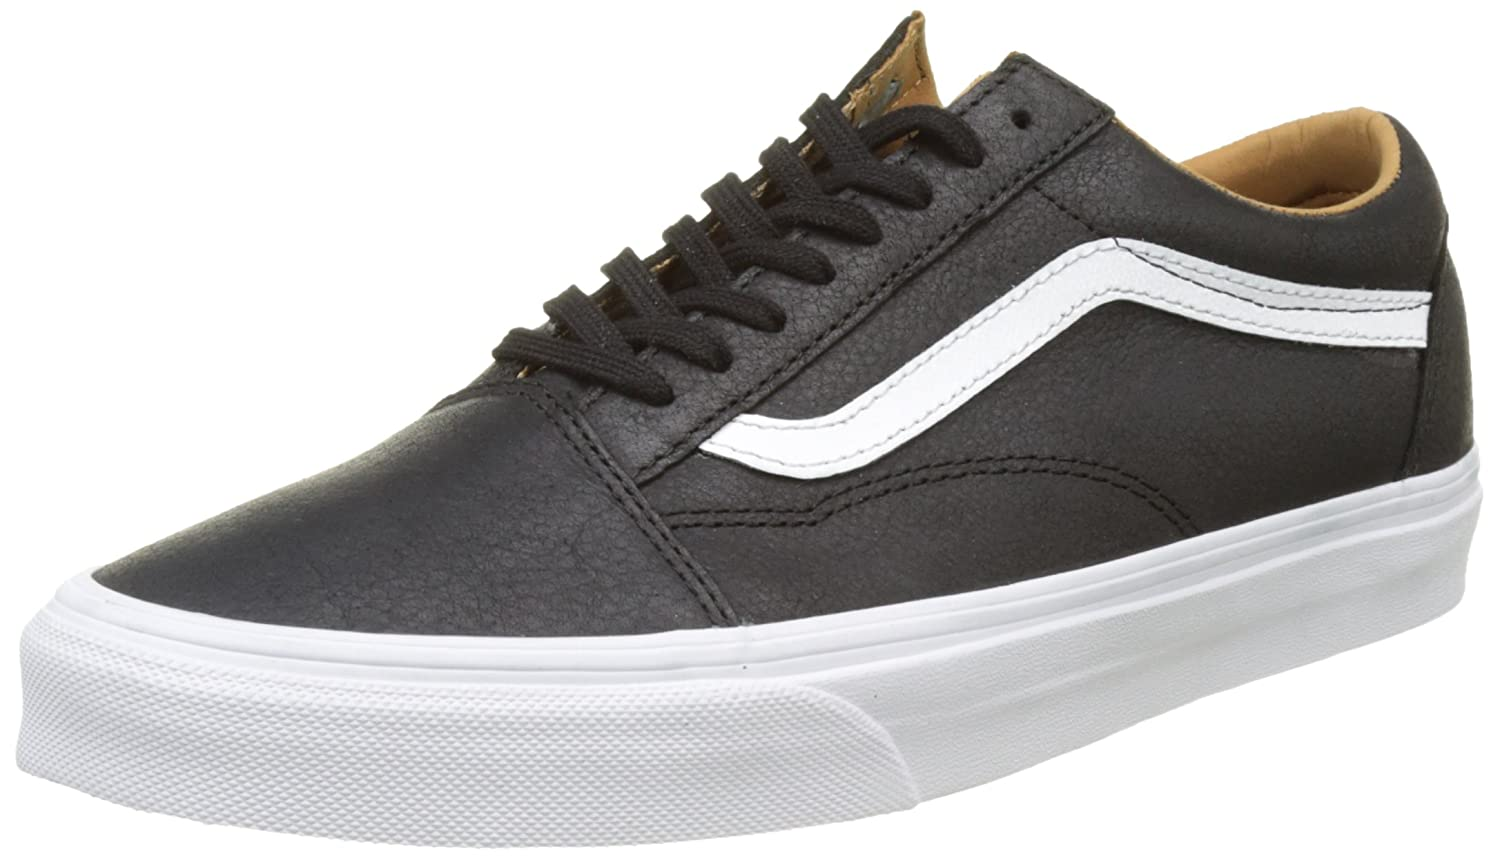 Vans Unisex Old Skool Classic Skate Shoes B01I231TLA 8.5 B(M) US Women / 7 D(M) US Men|(Premium Leather) Black/True White